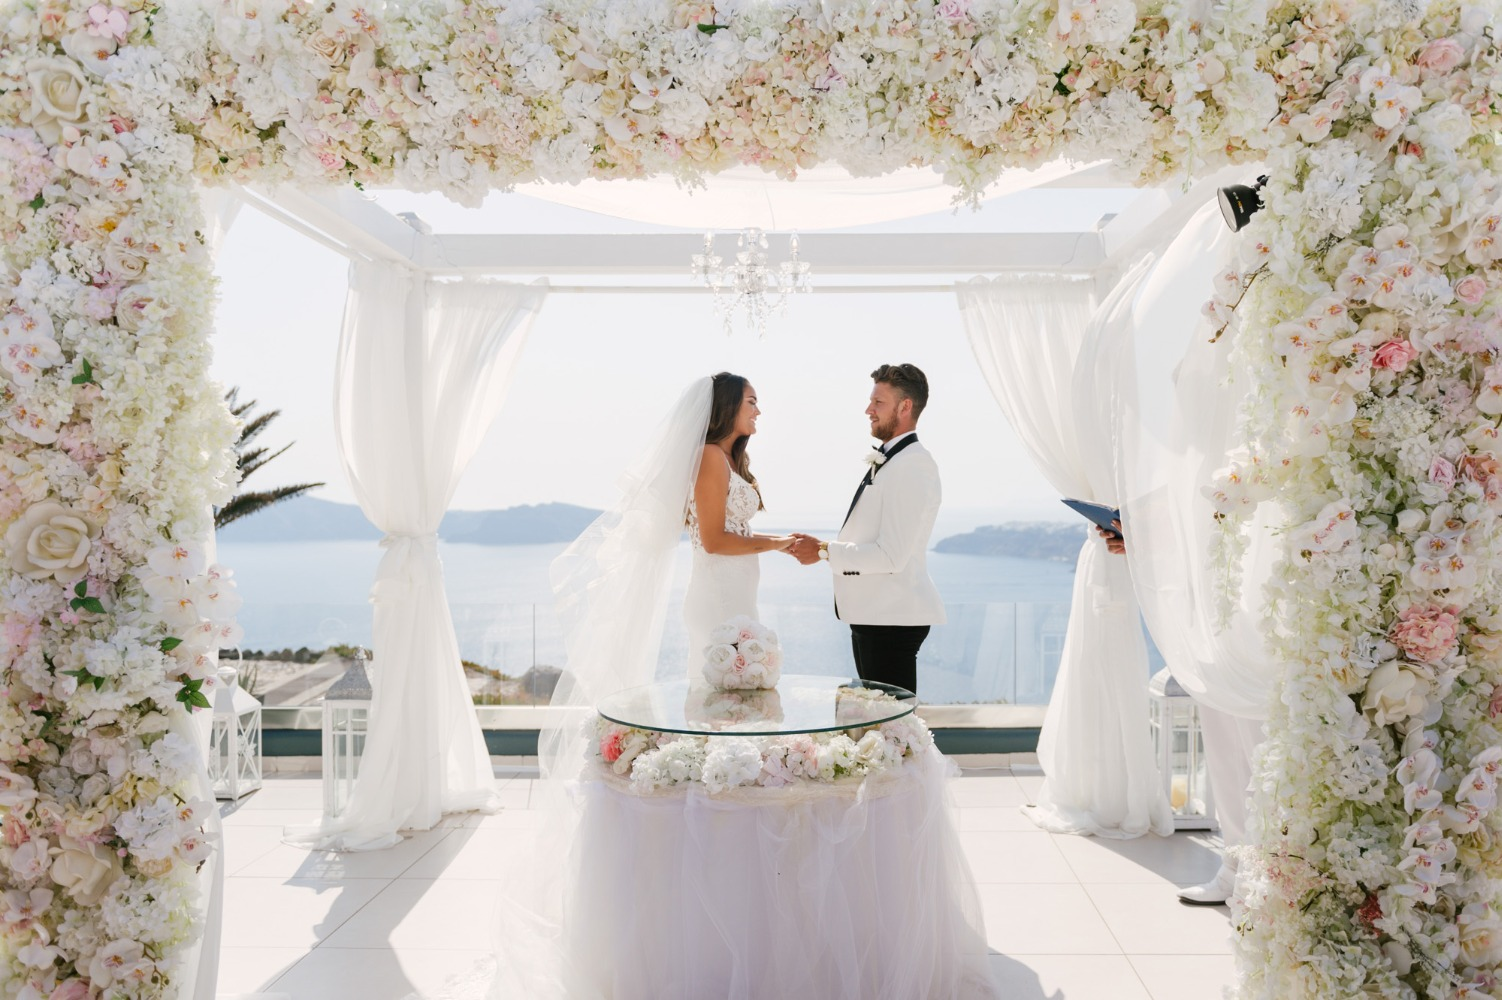 glamorous wedding in Greece